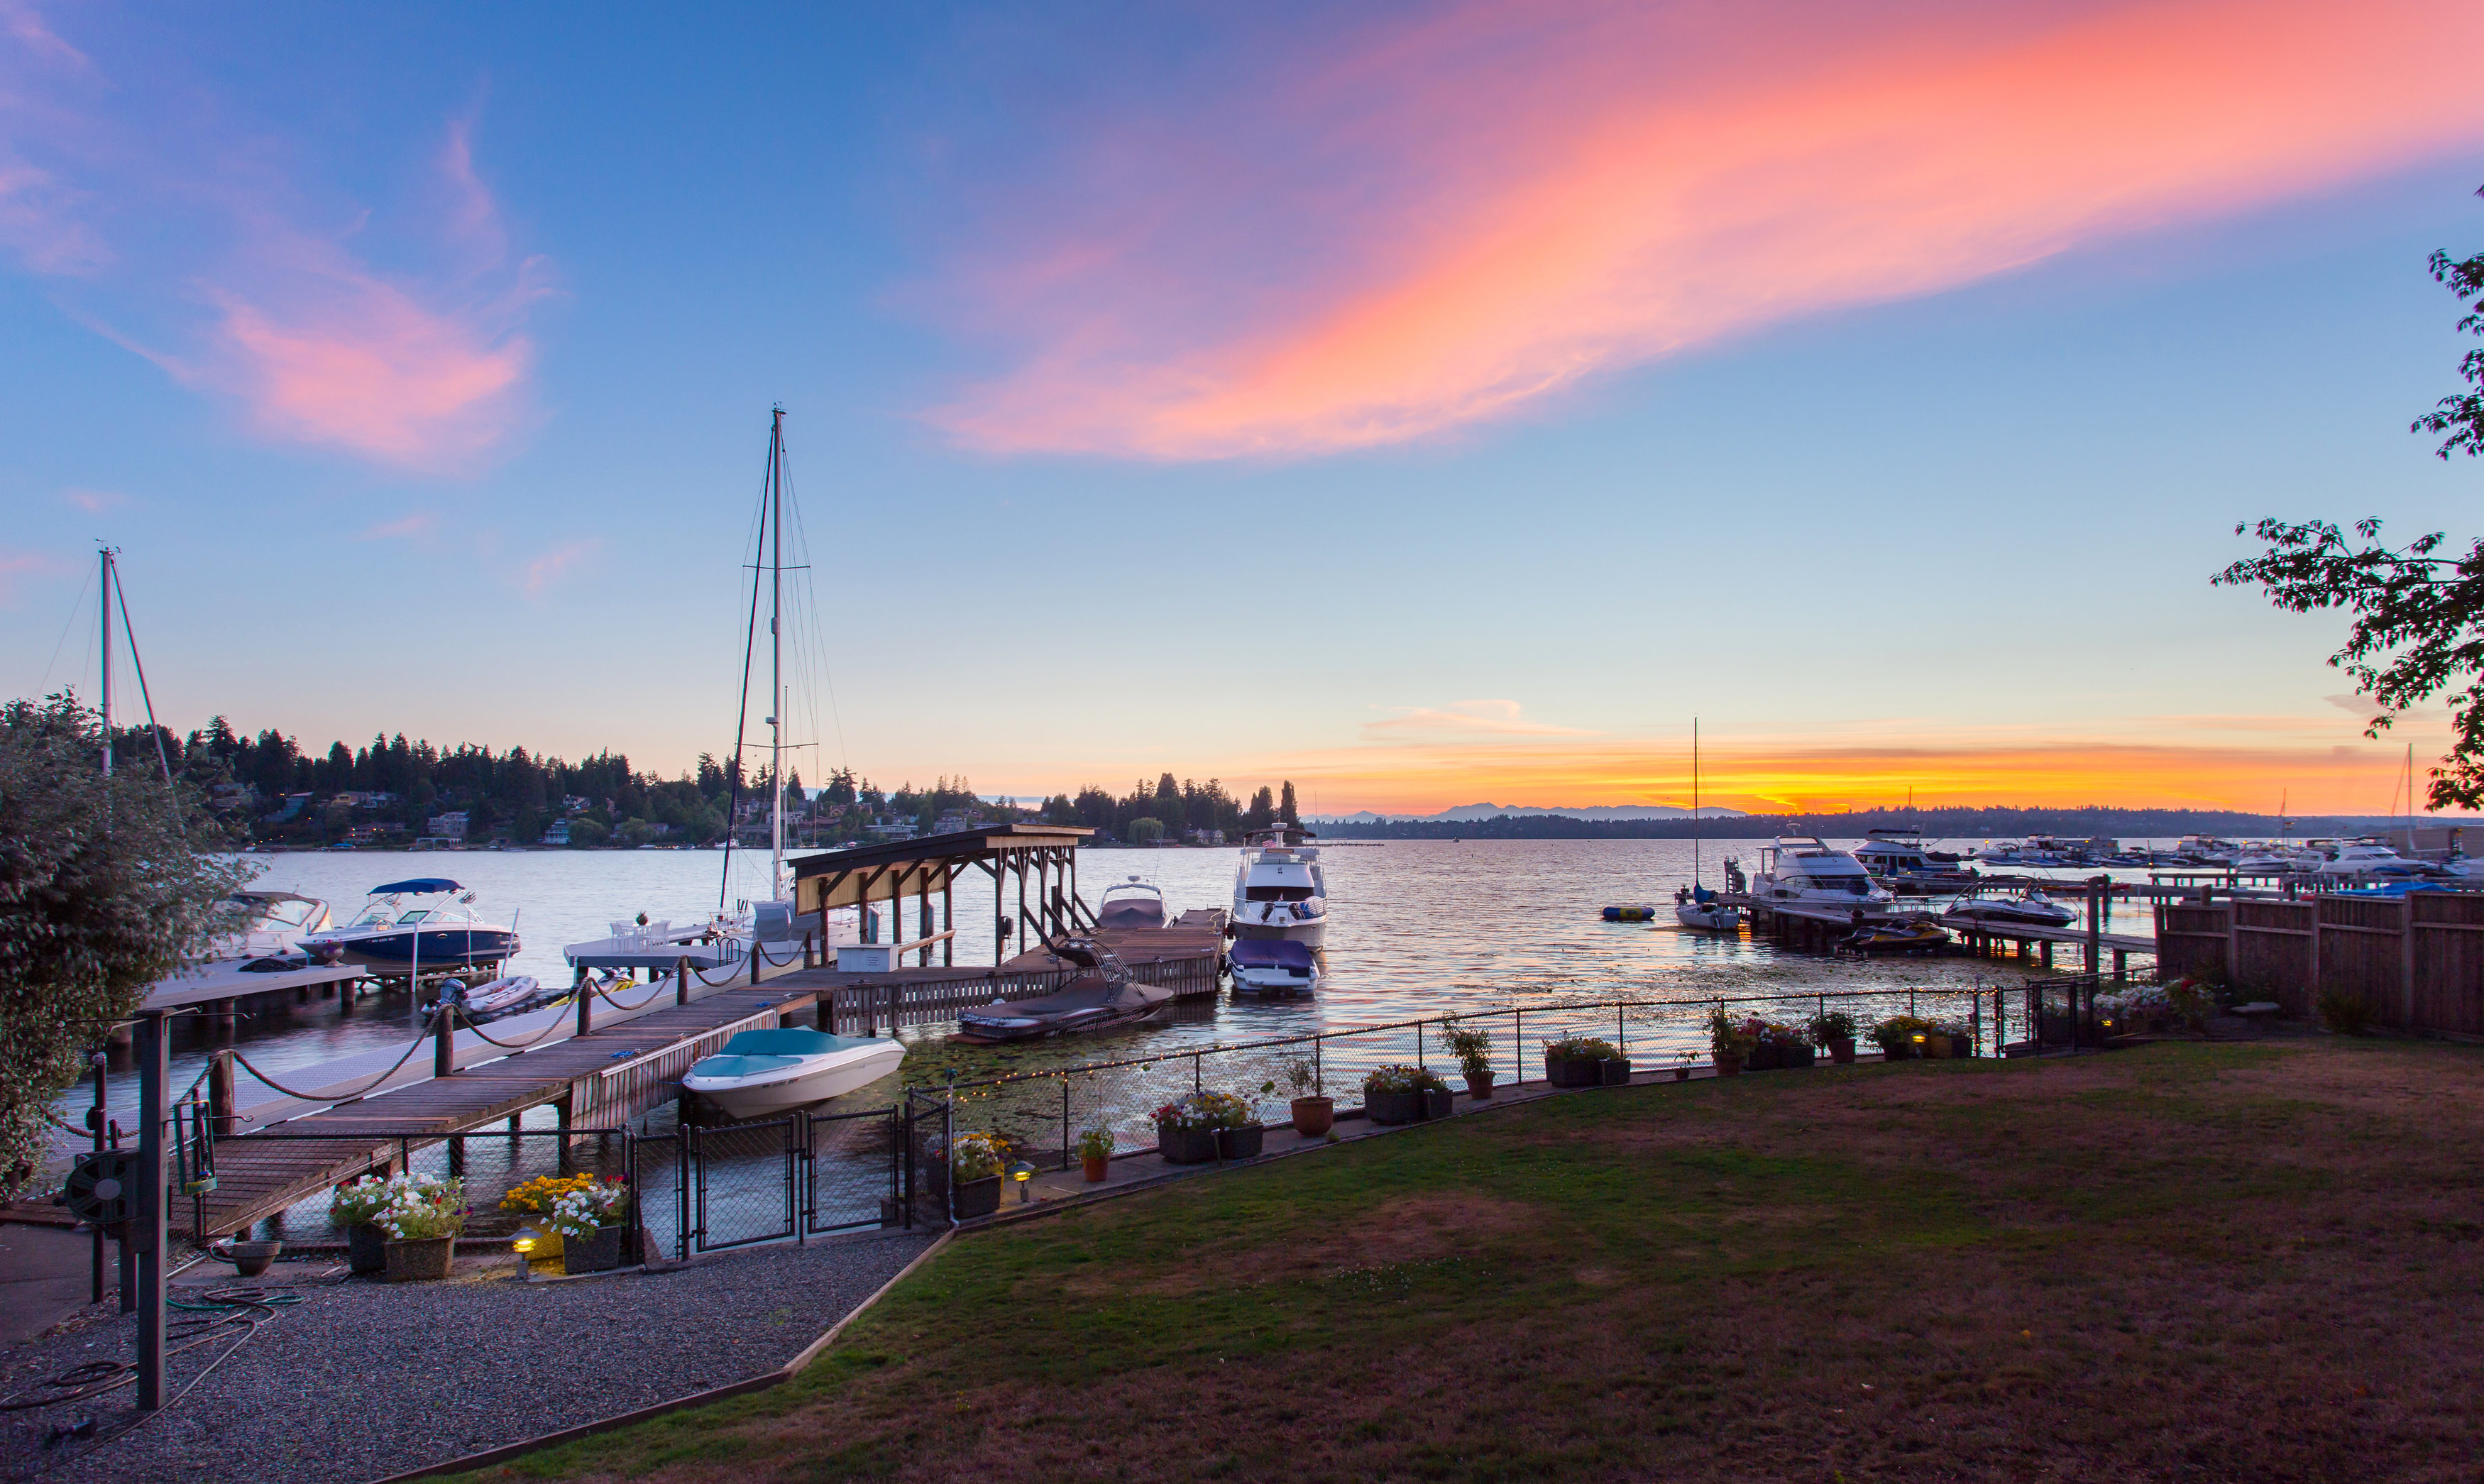 Terreno por un Venta en Premier Kirkland Waterfront Living 4635 Lake Washington Blvd NE Kirkland, Washington 98033 Estados Unidos